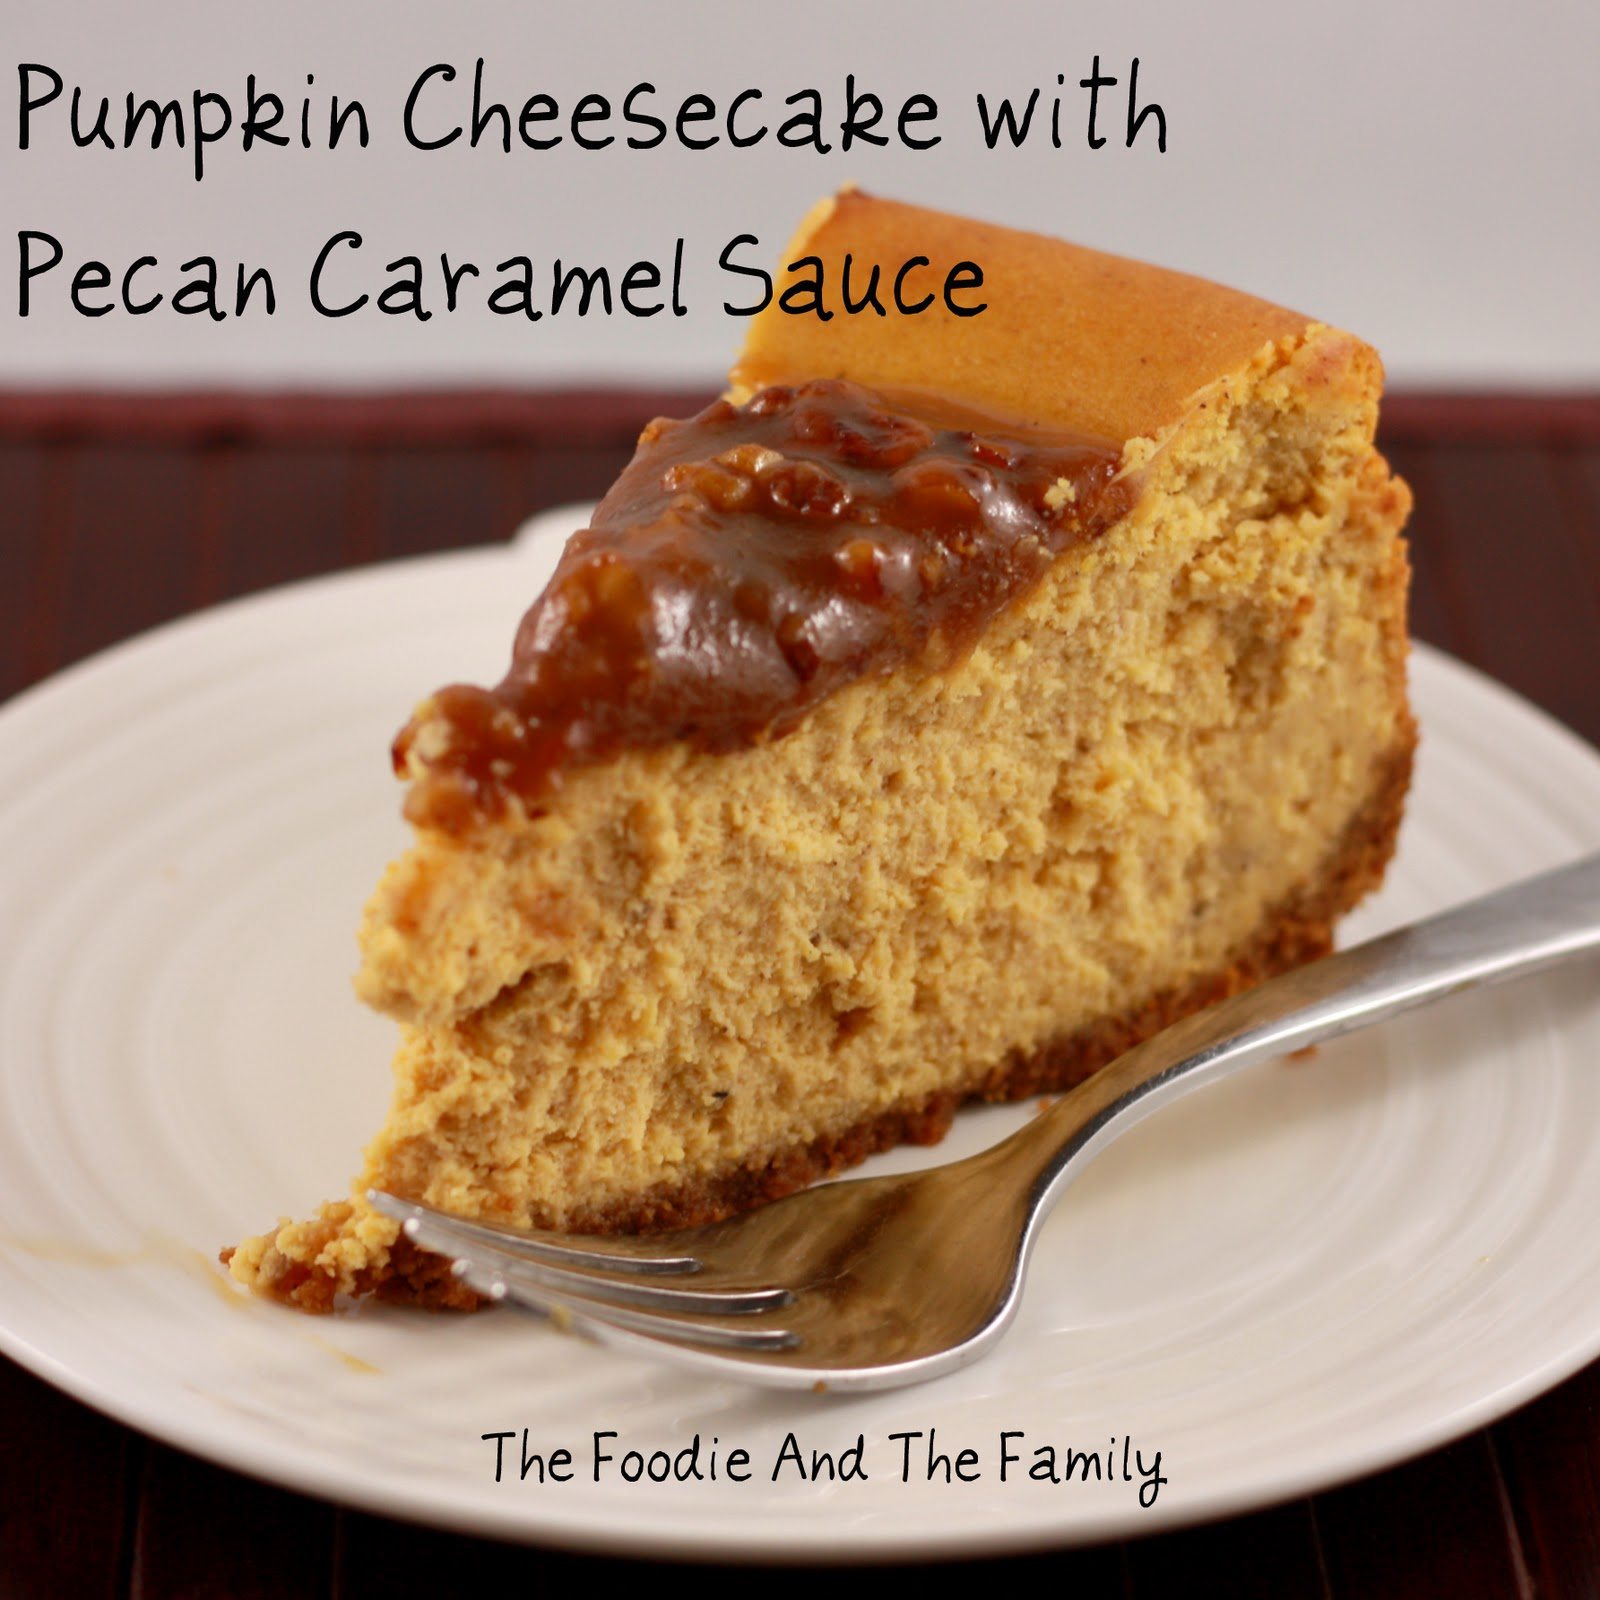 Pumpkin Cheesecake with Pecan Caramel Sauce